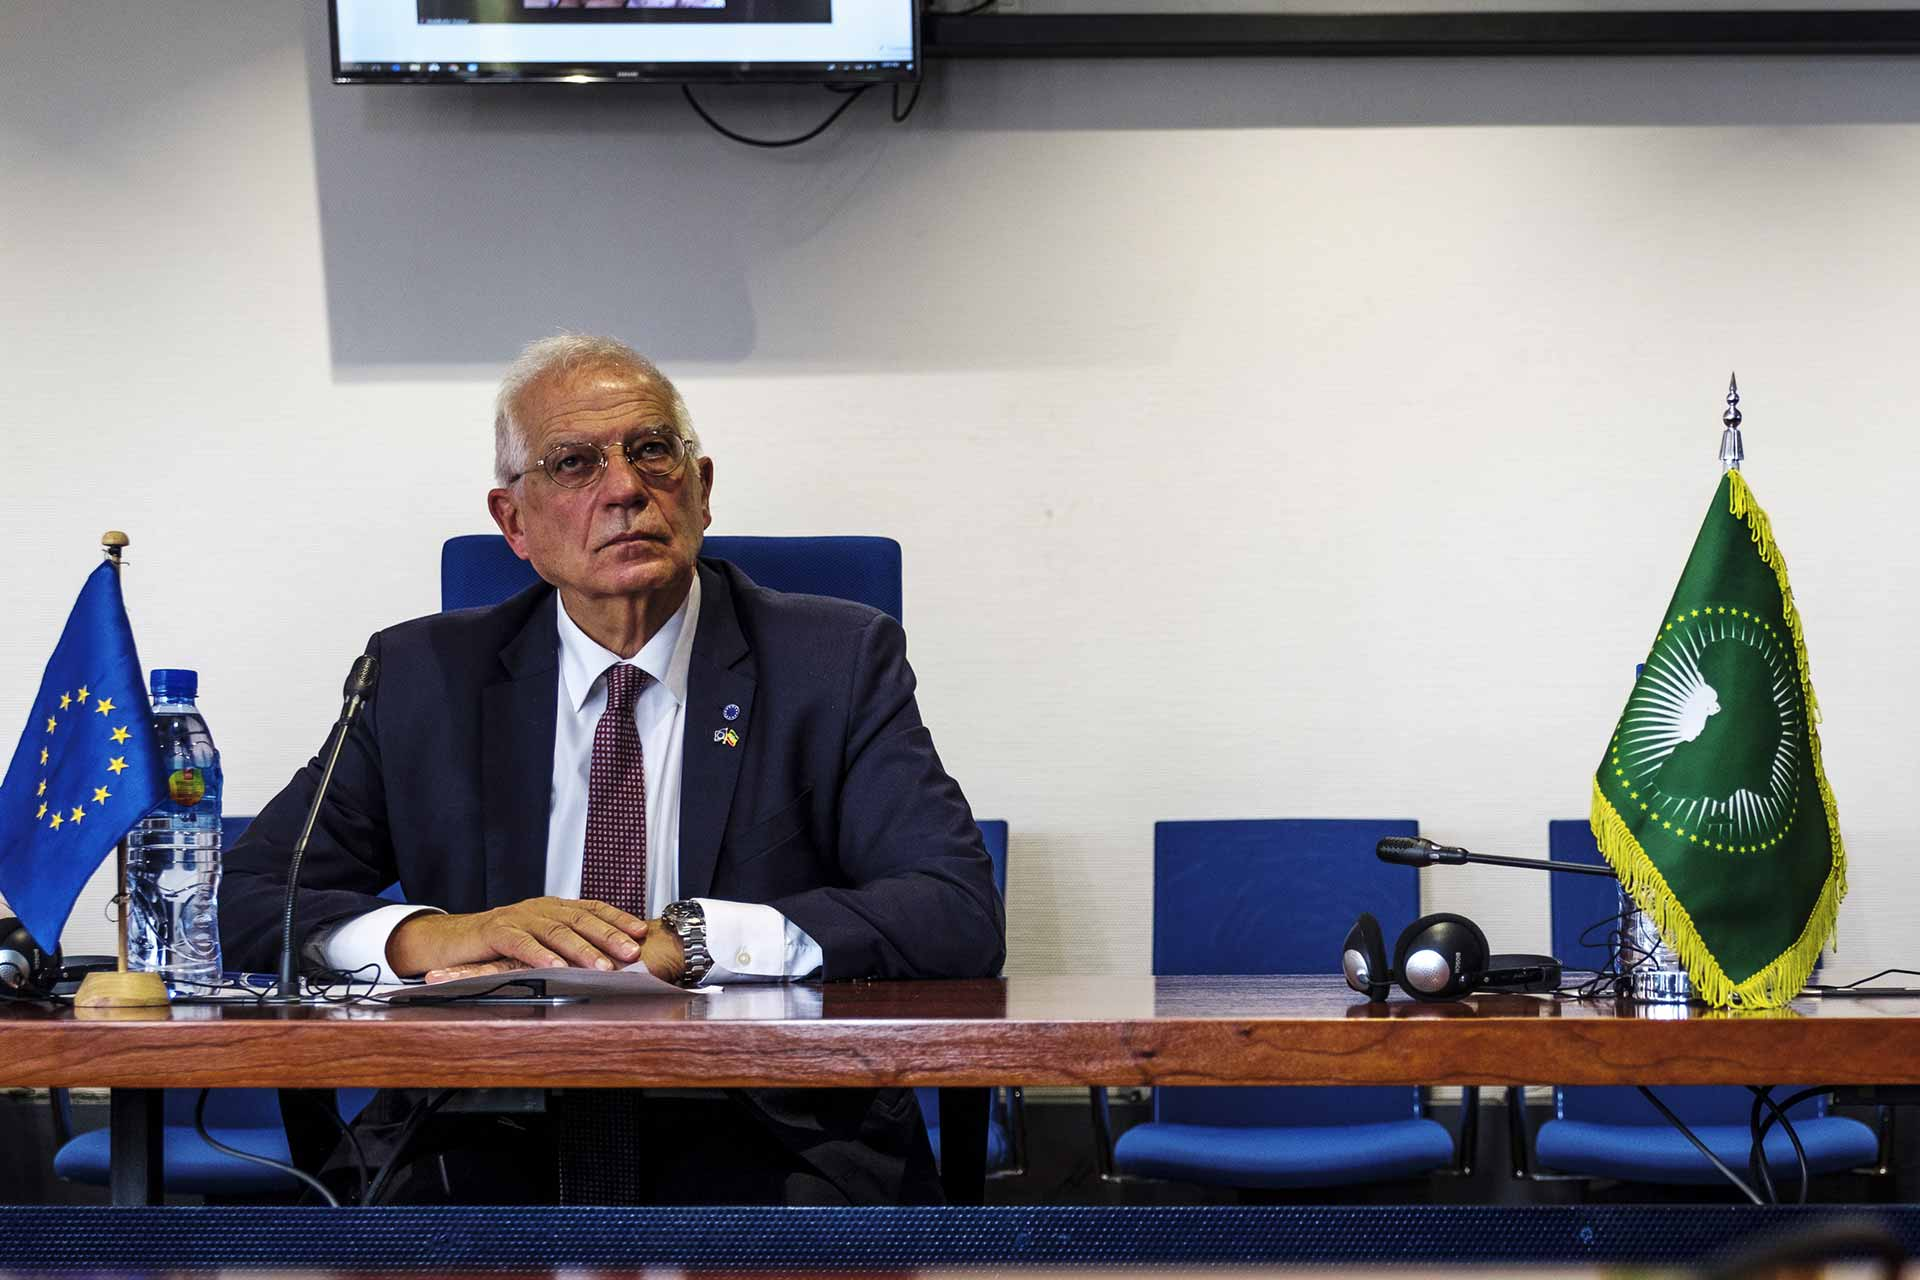 Josep Borrell Fontelles at the African Union Commission's Peace and Security Building in Addis Ababa.